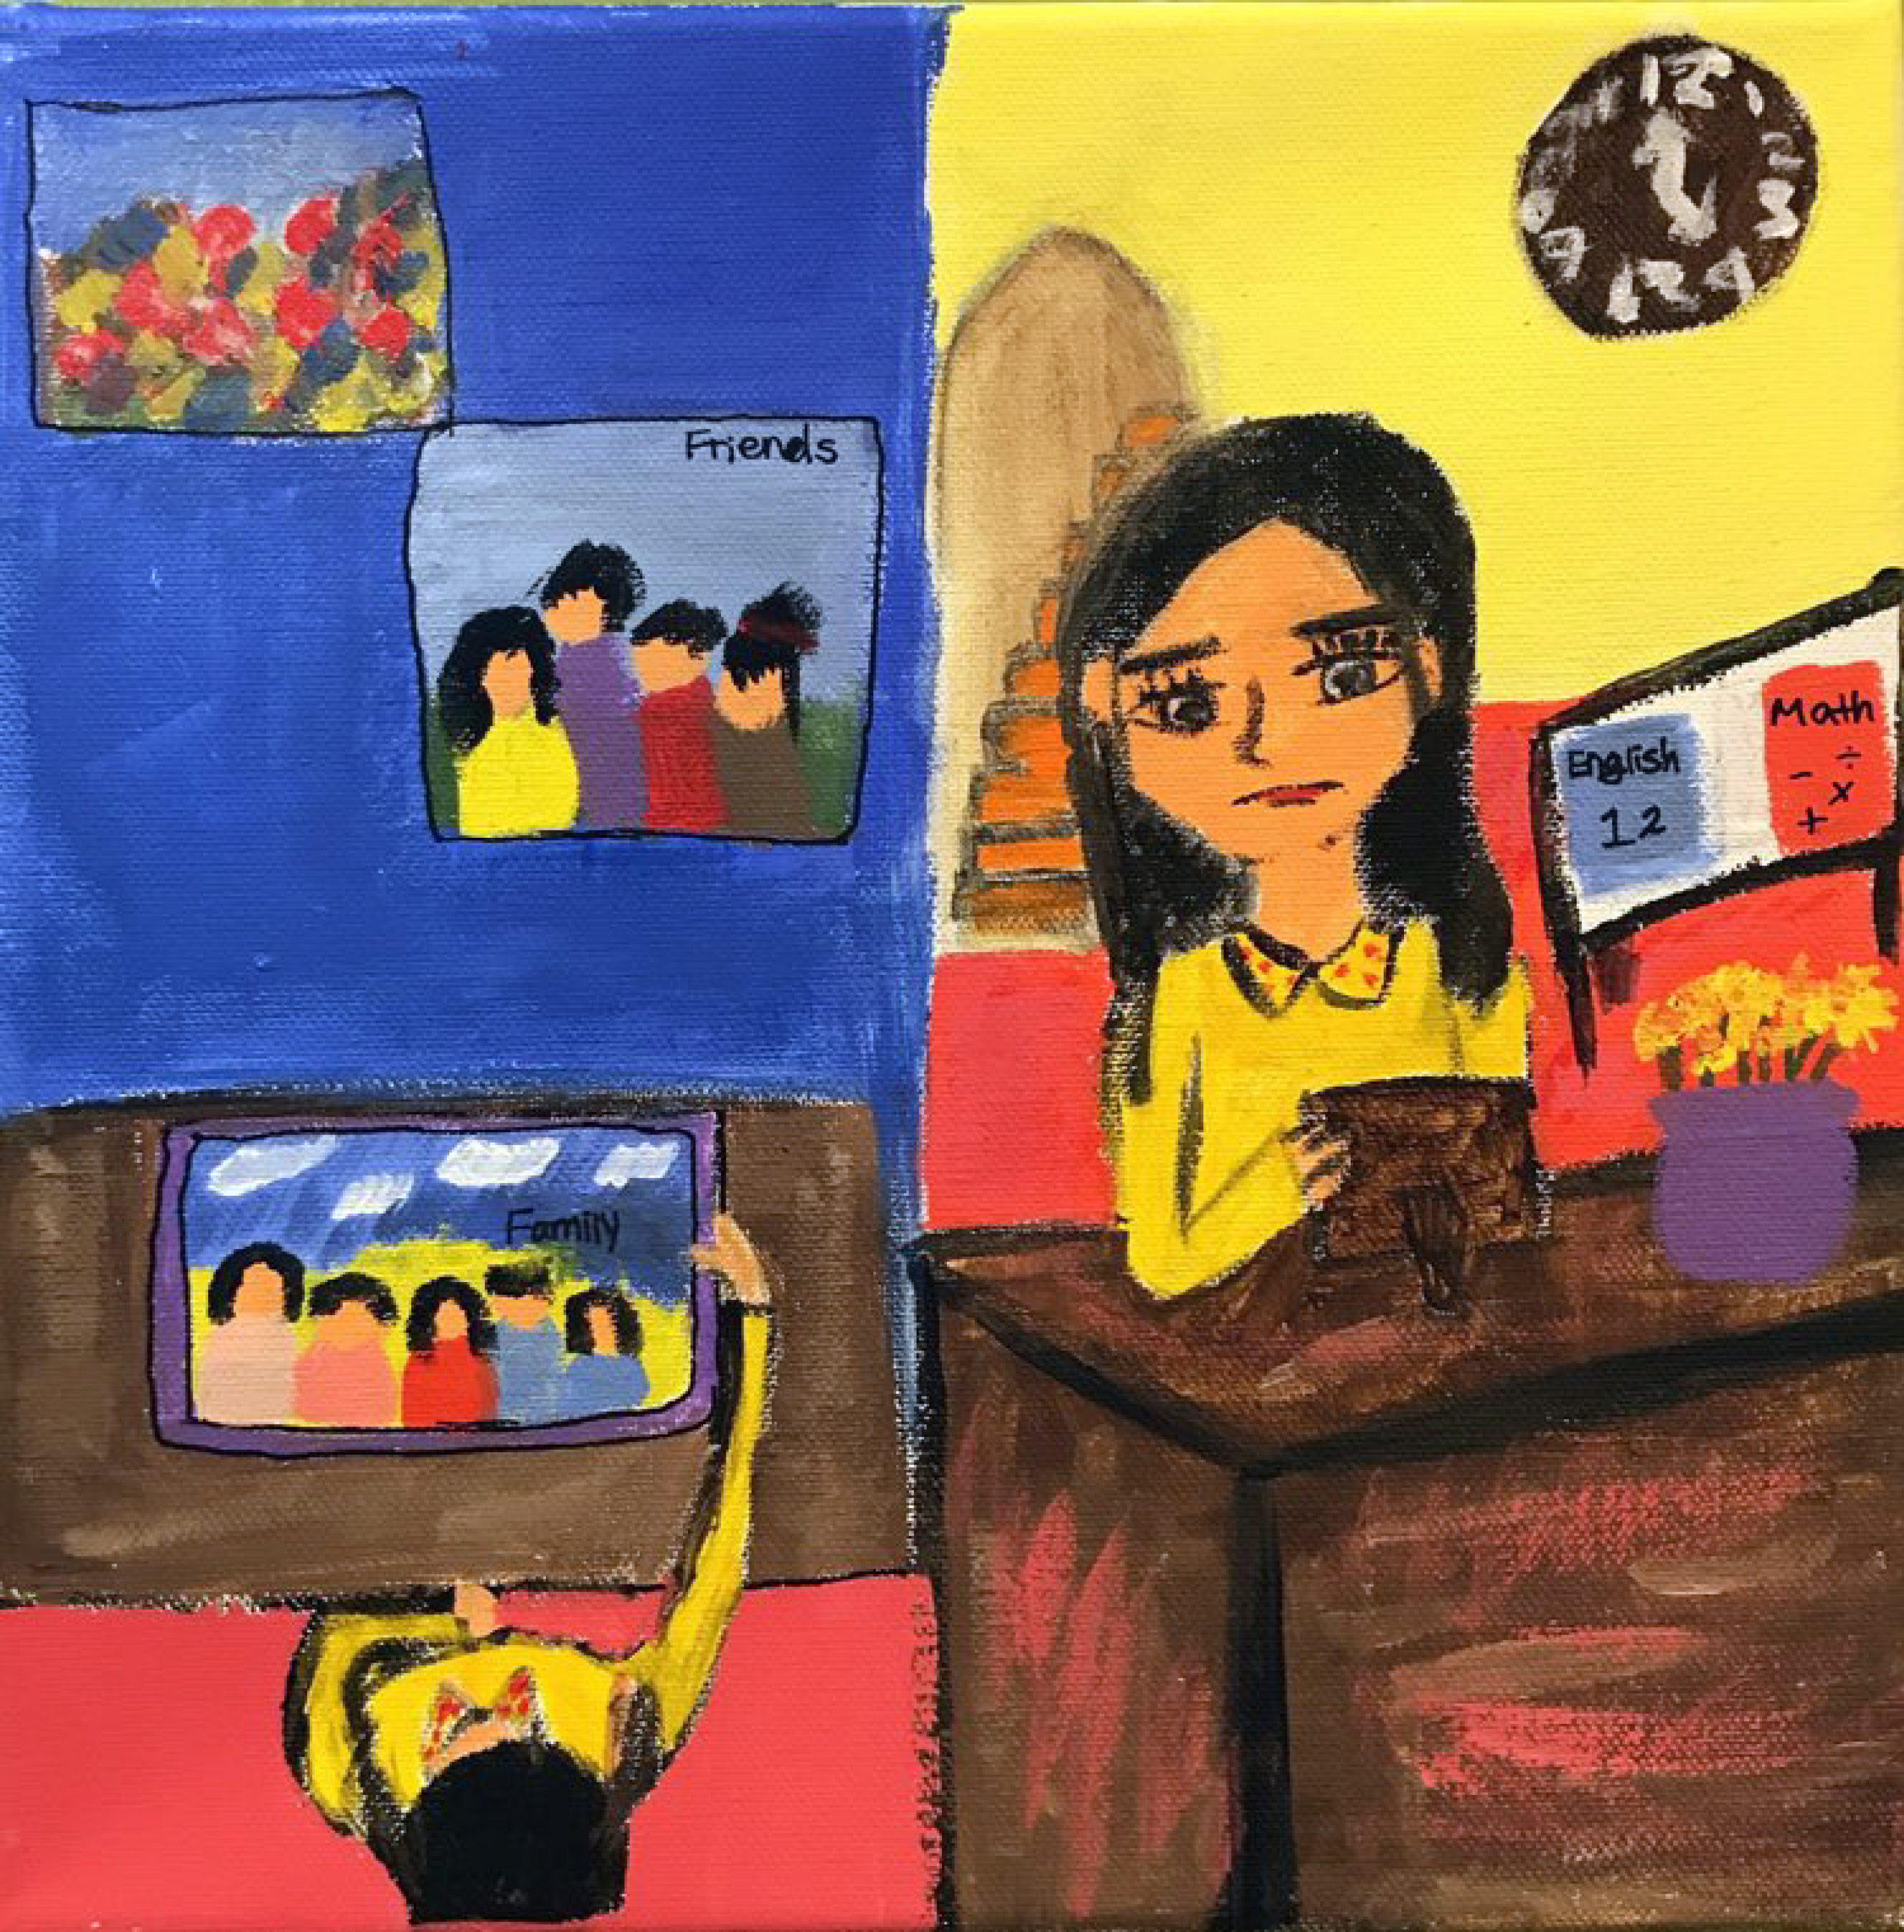 A girl looks at a picture frame with pictures of her family. Pictures of friends hang on the wall. Textbooks show that she is studying.